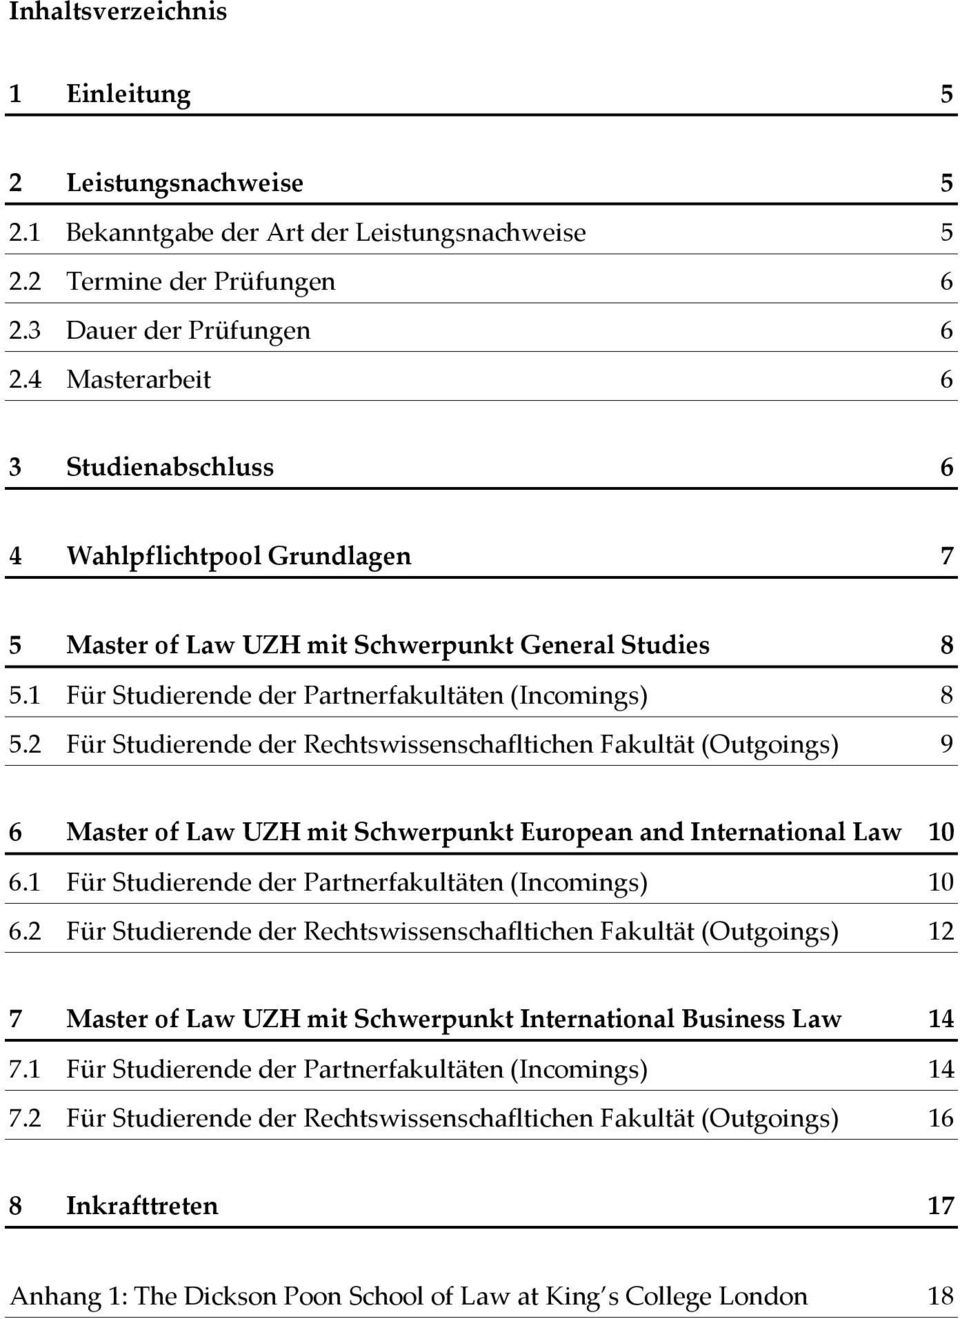 2 Für Studierende der Rechtswissenschafltichen Fakultät (Outgoings) 9 6 Master of Law UZH mit Schwerpunkt European and International Law 10 6.1 Für Studierende der Partnerfakultäten (Incomings) 10 6.